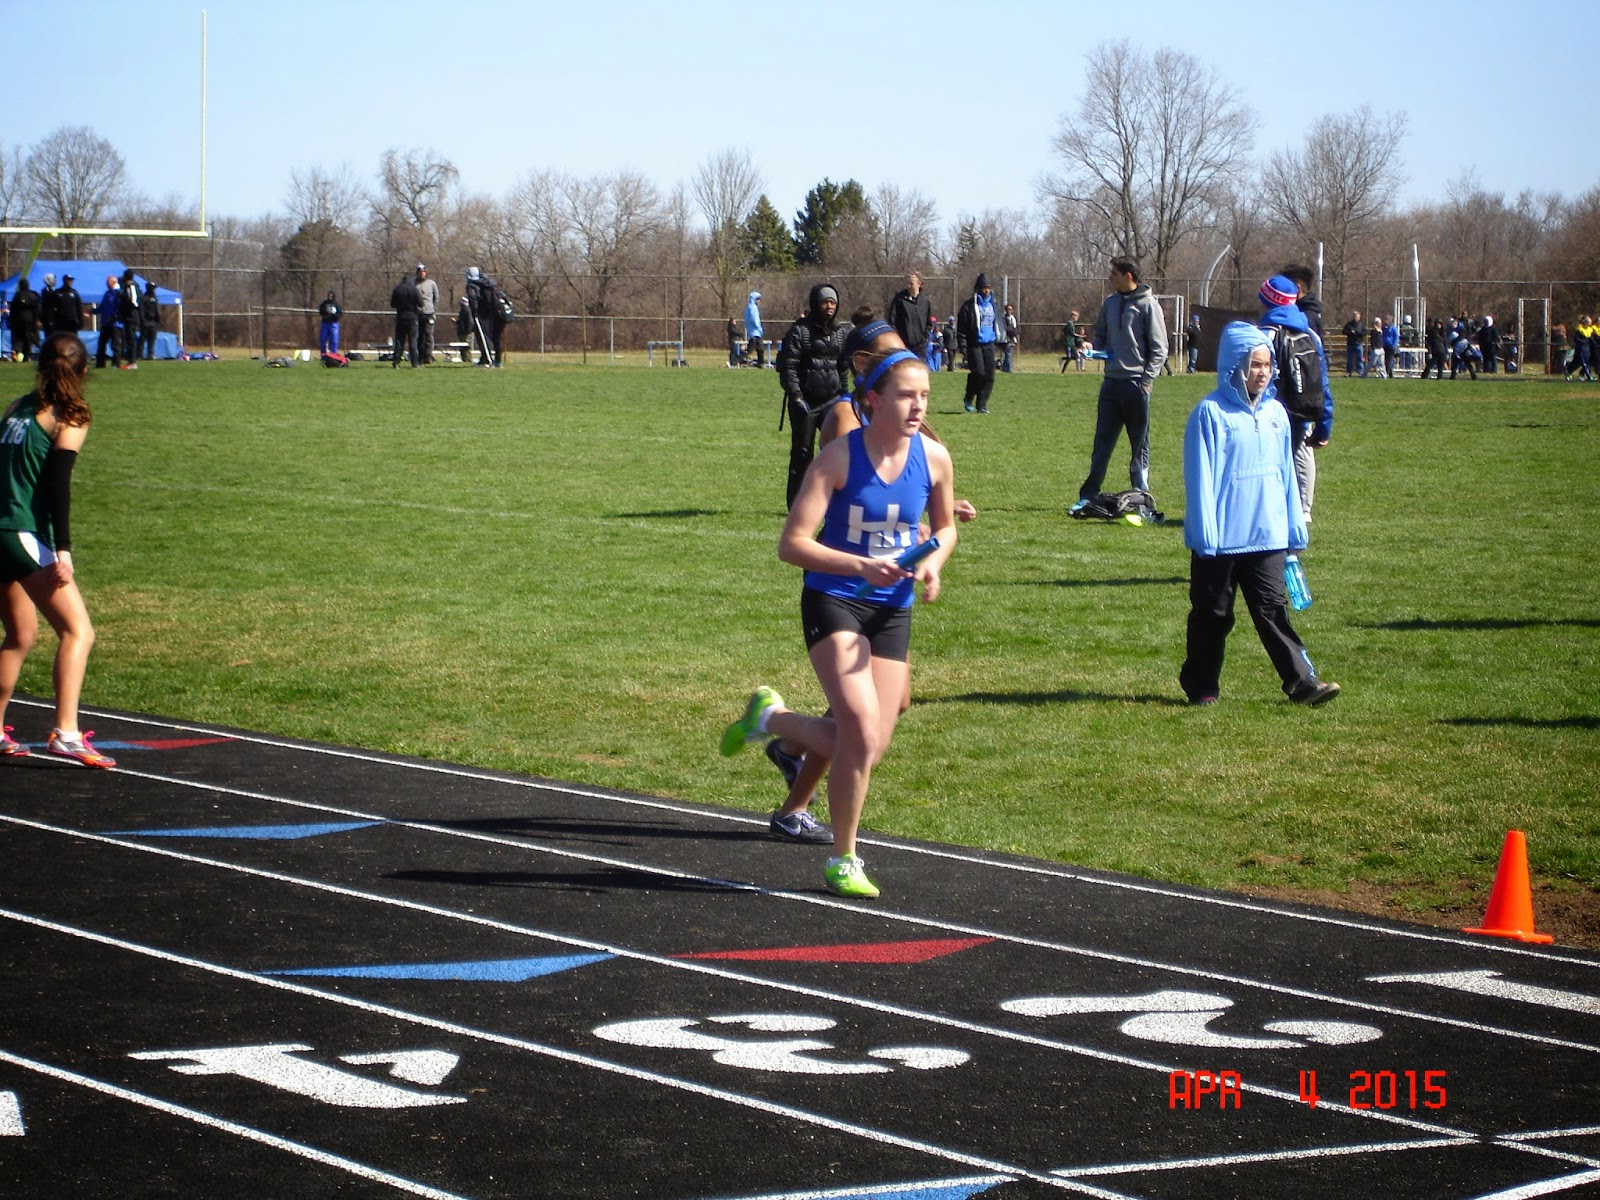 2013 esd track meet results 2015